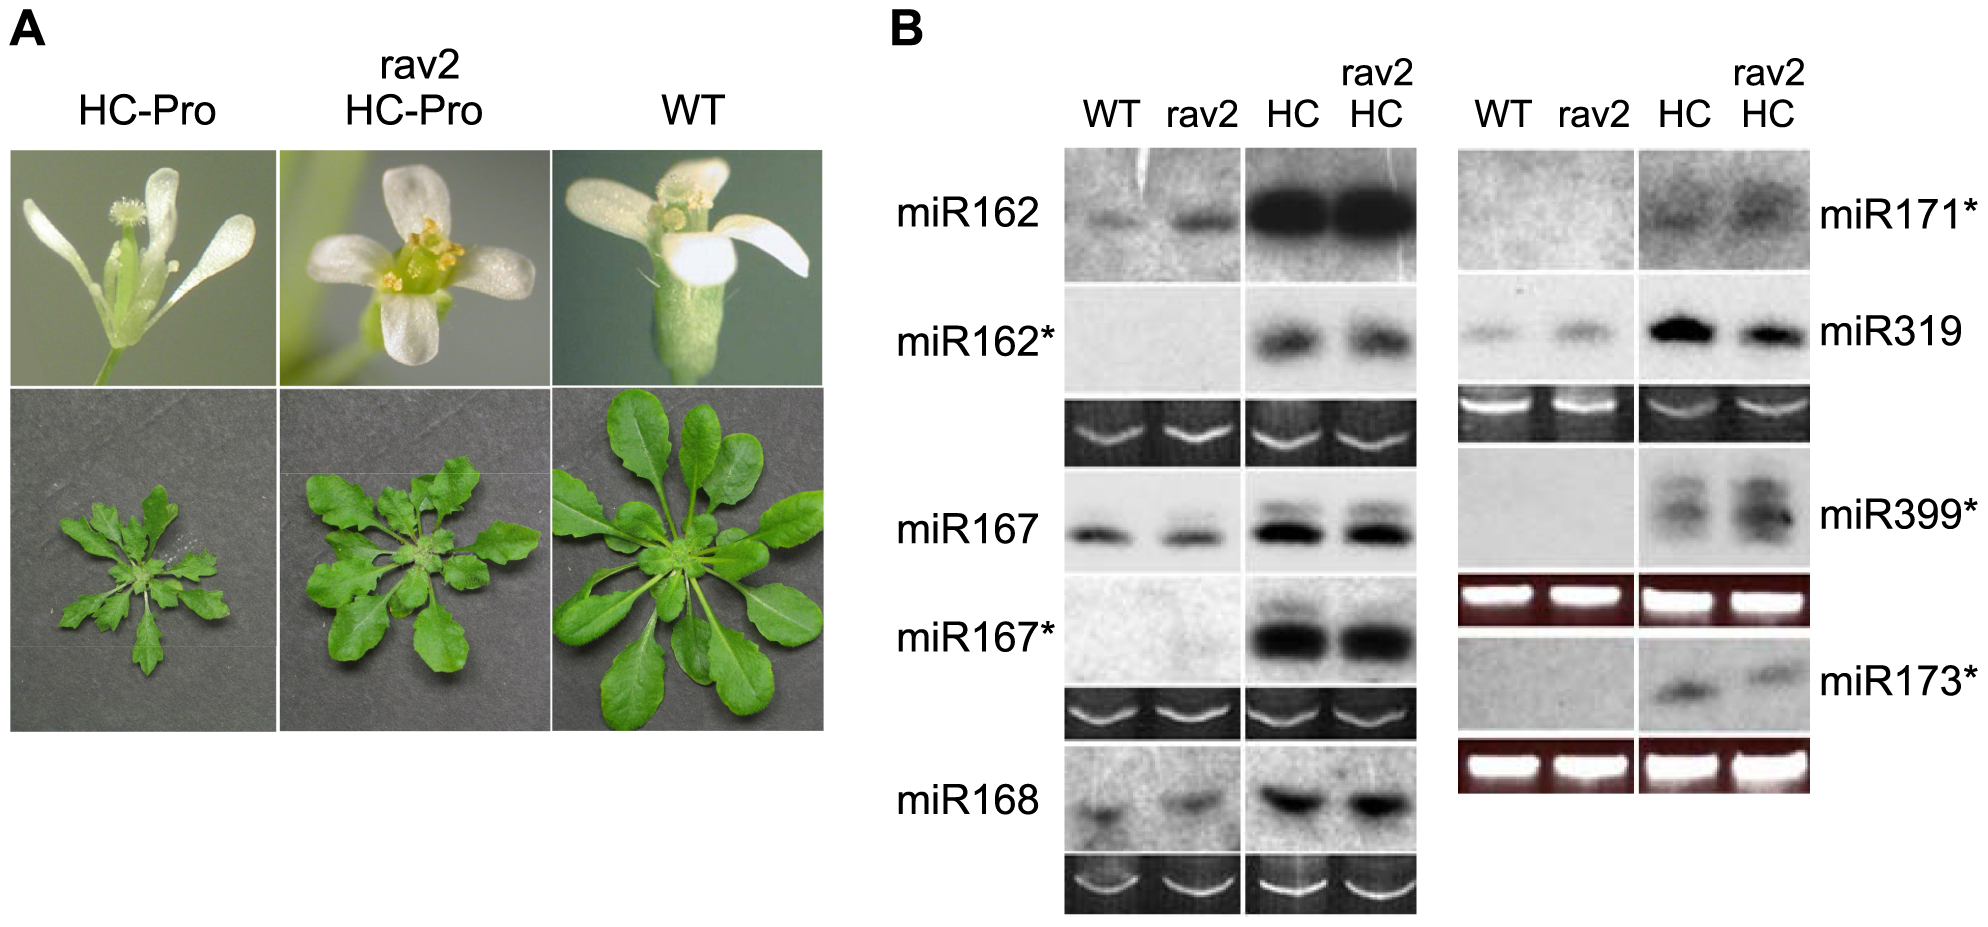 RAV2 is Required for Many HC-Pro-associated Morphological Anomalies but not for Defects in MicroRNA Biogenesis.